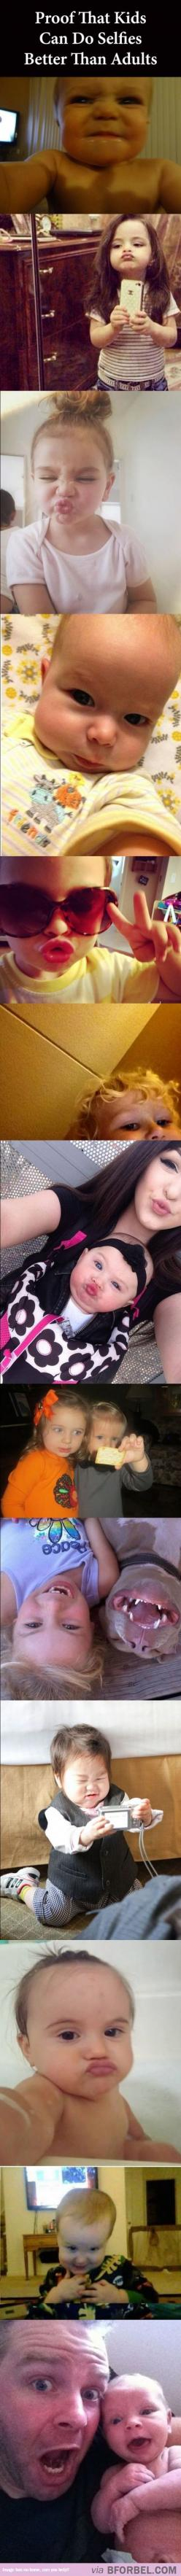 Omg these are adorable! The only time duck lips looks cute as a selfie..when ur a child! !: Little Girls, Giggle, So Funny, Selfies Better, Kids Selfies, Kid Selfies